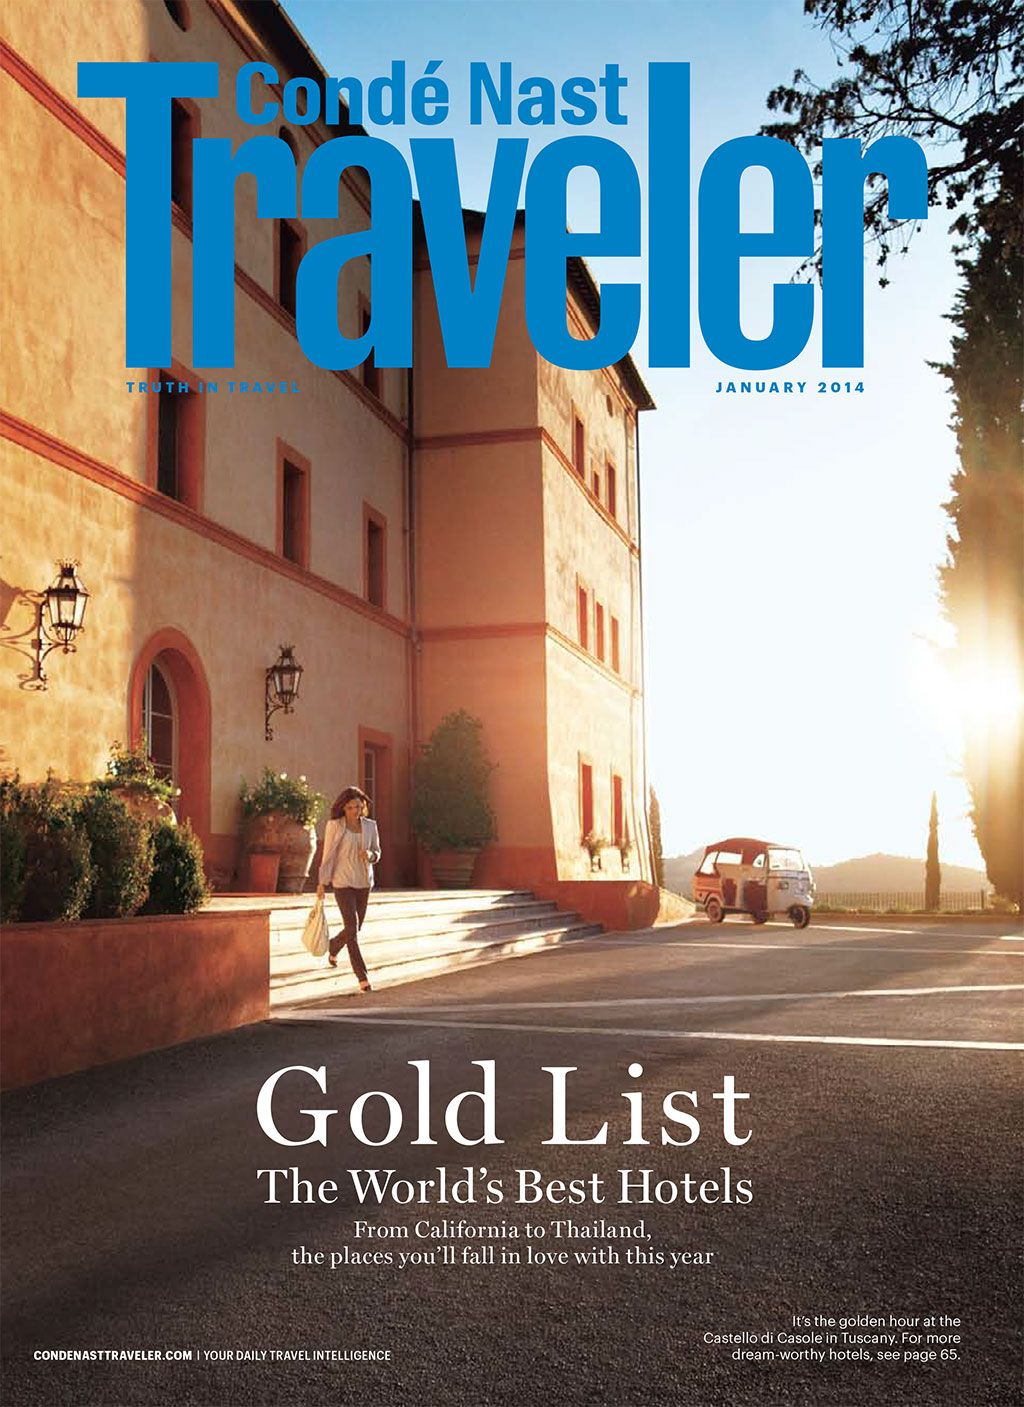 January 2017 Issue Of Conde Nast Traveler Gold List World Best Hotels It S Always Good To Check Out The Compeion As Well Keep Up On What Today